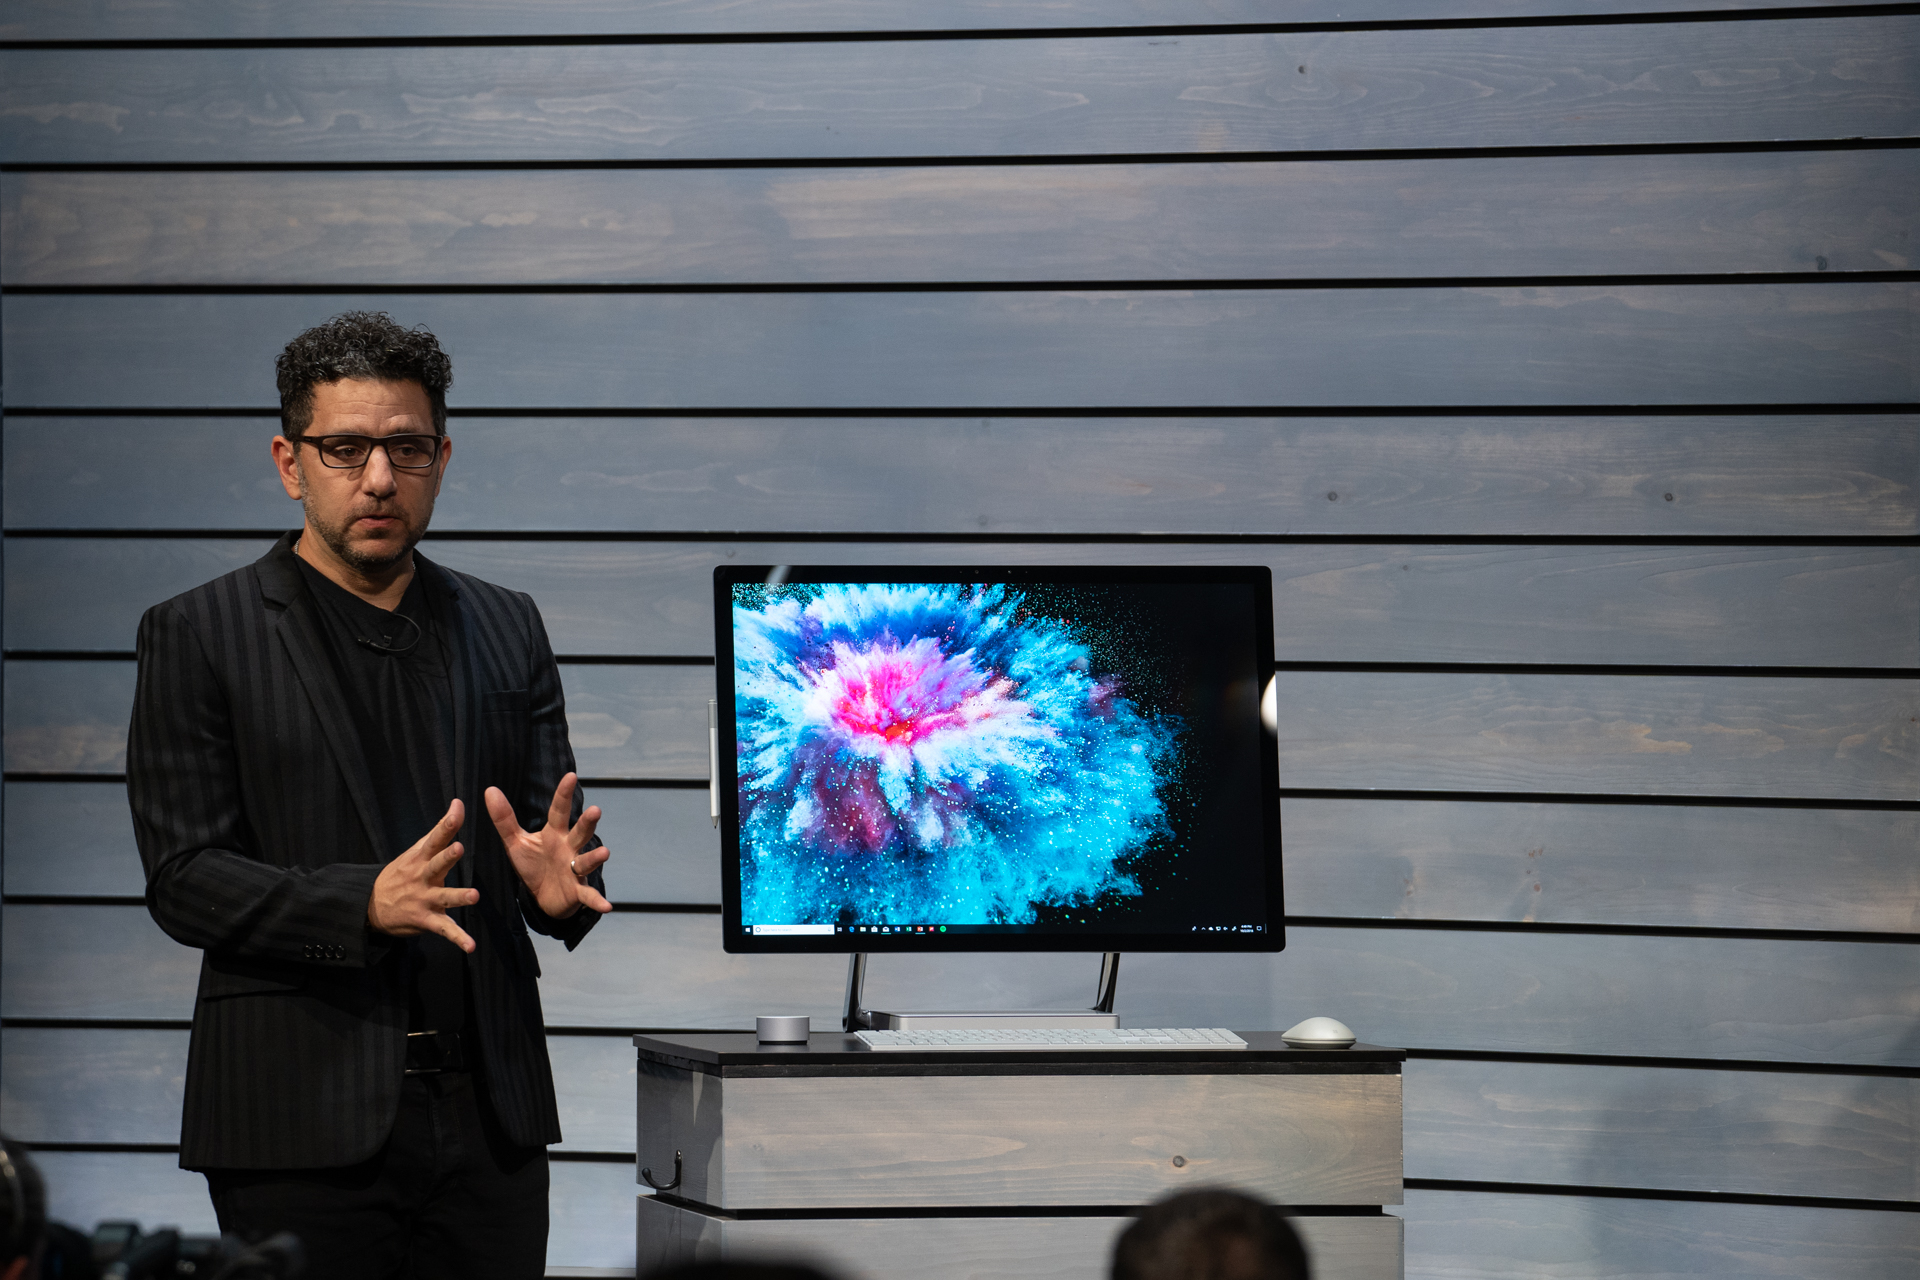 Microsoft Chief Product Officer Panos Panay revealing the Surface Studio 2 PC.